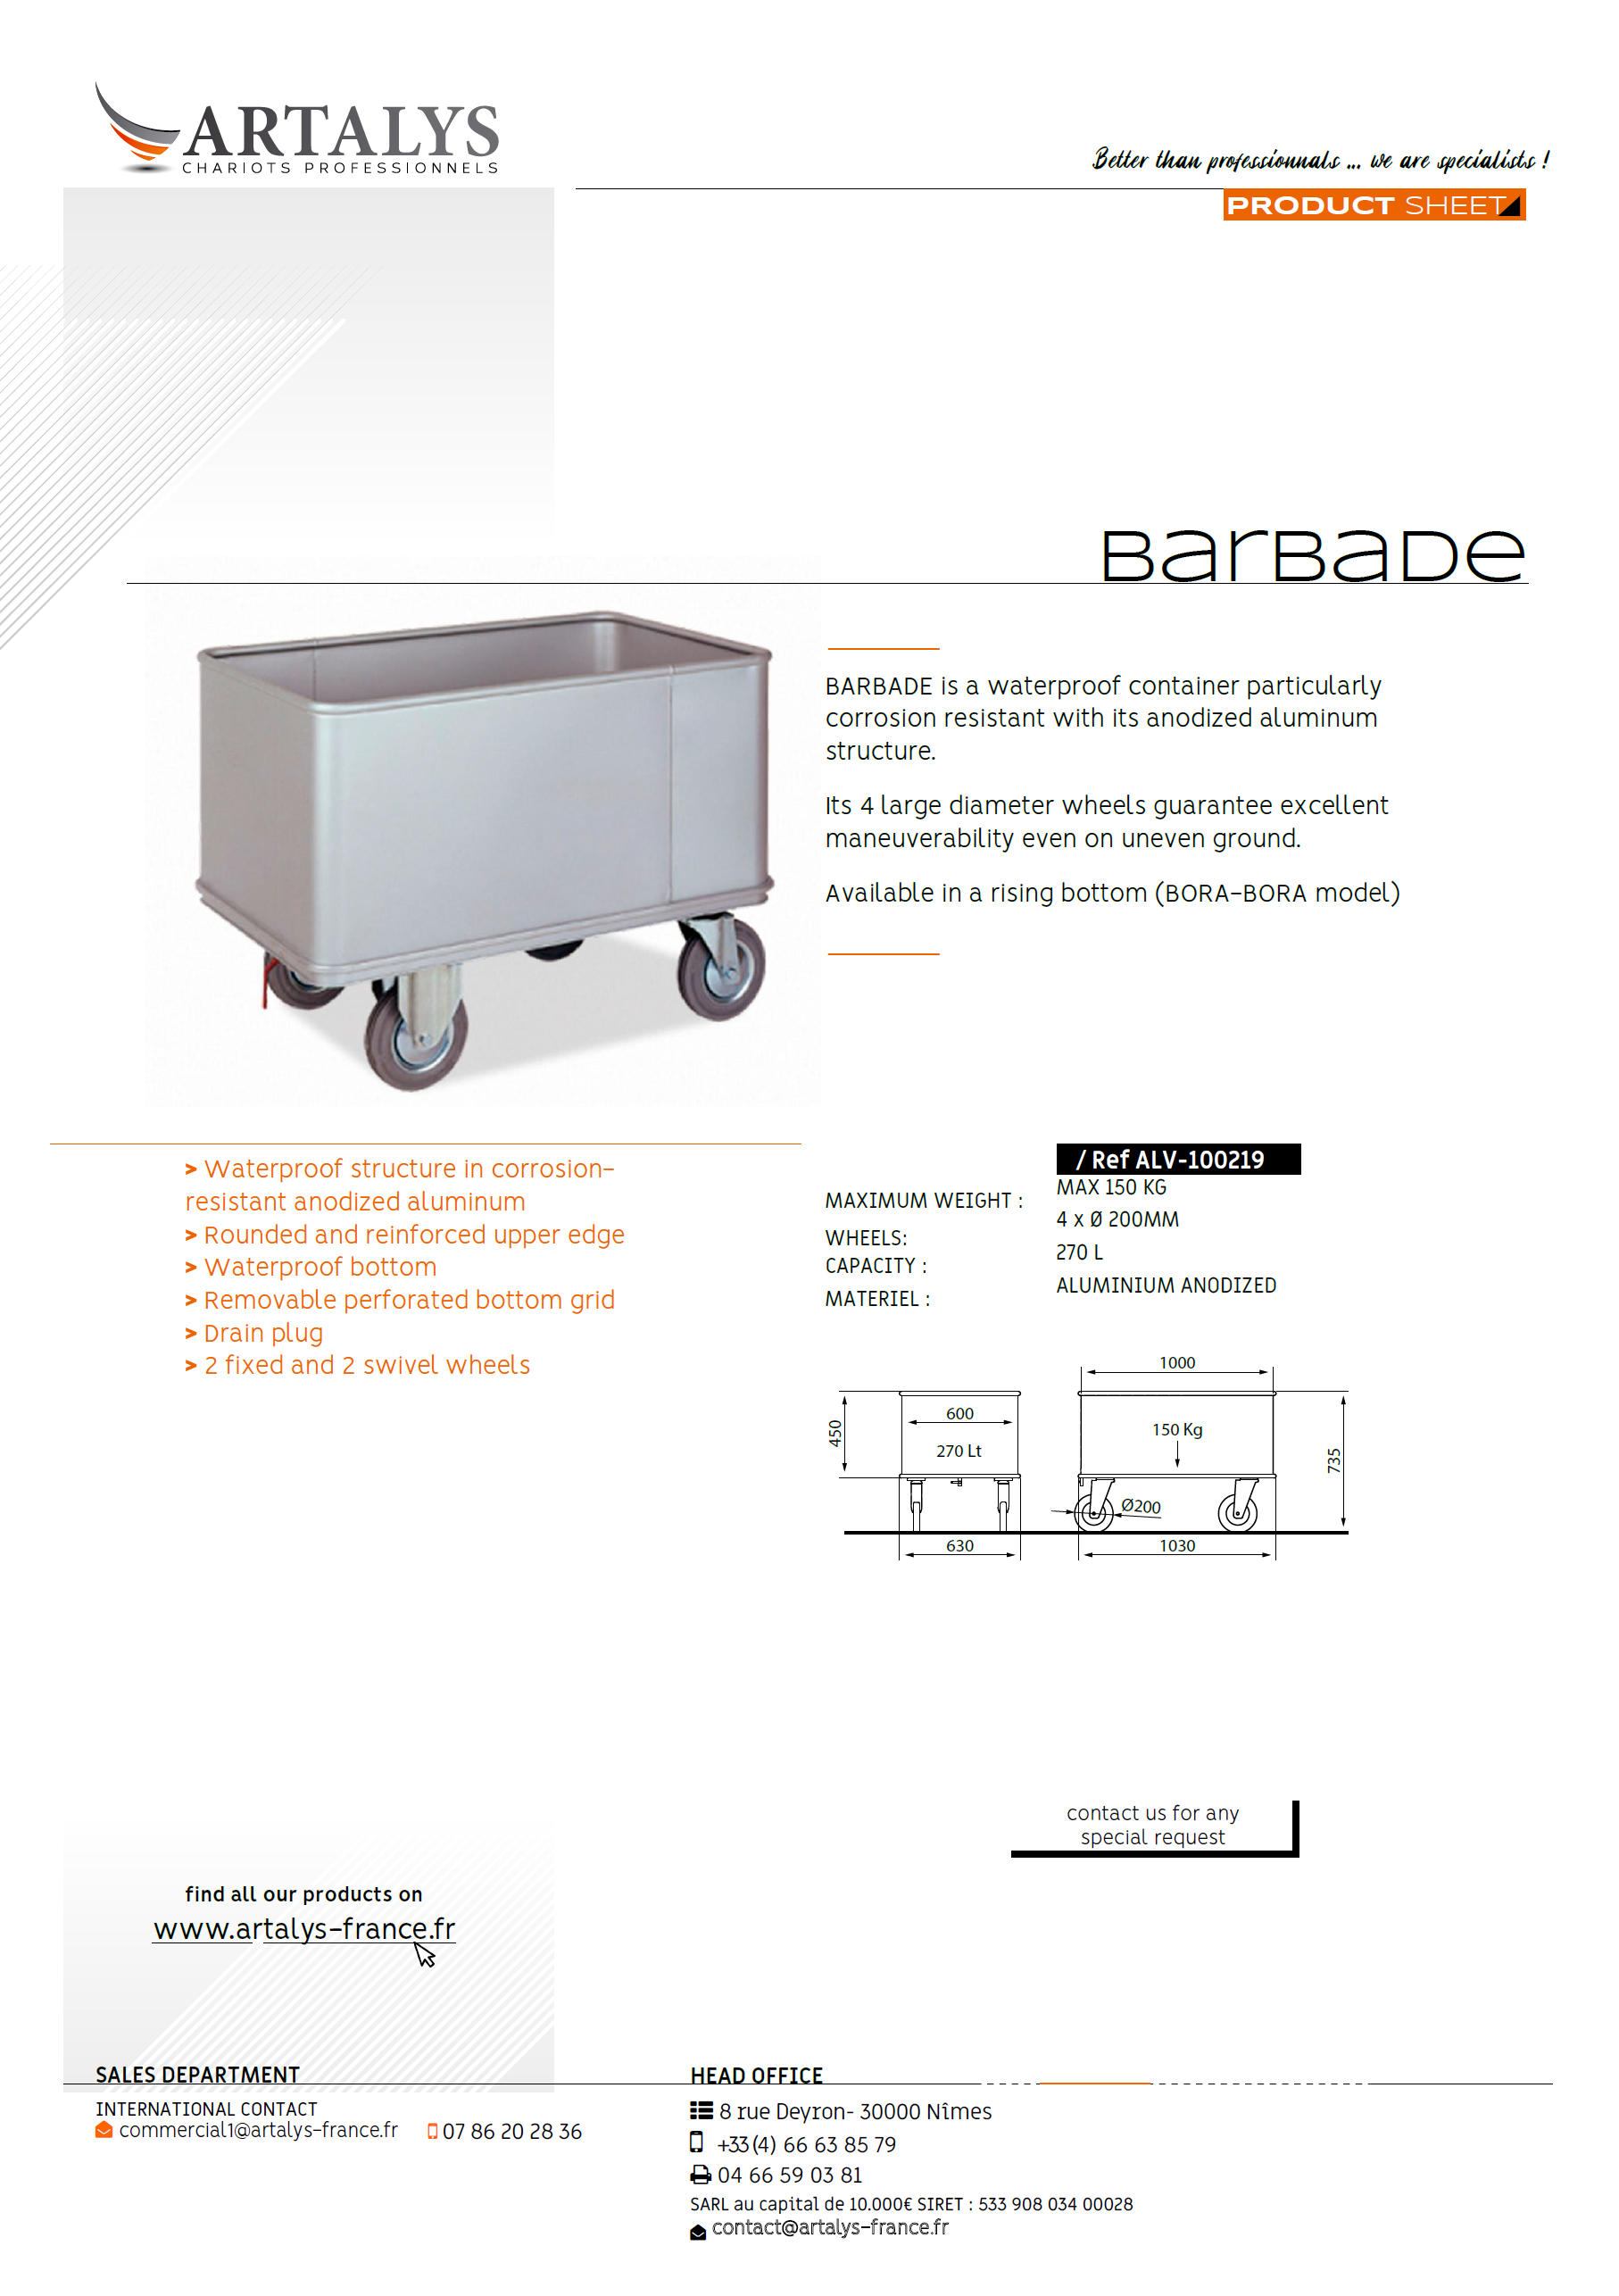 Product sheet of our barbade lingerie trolley